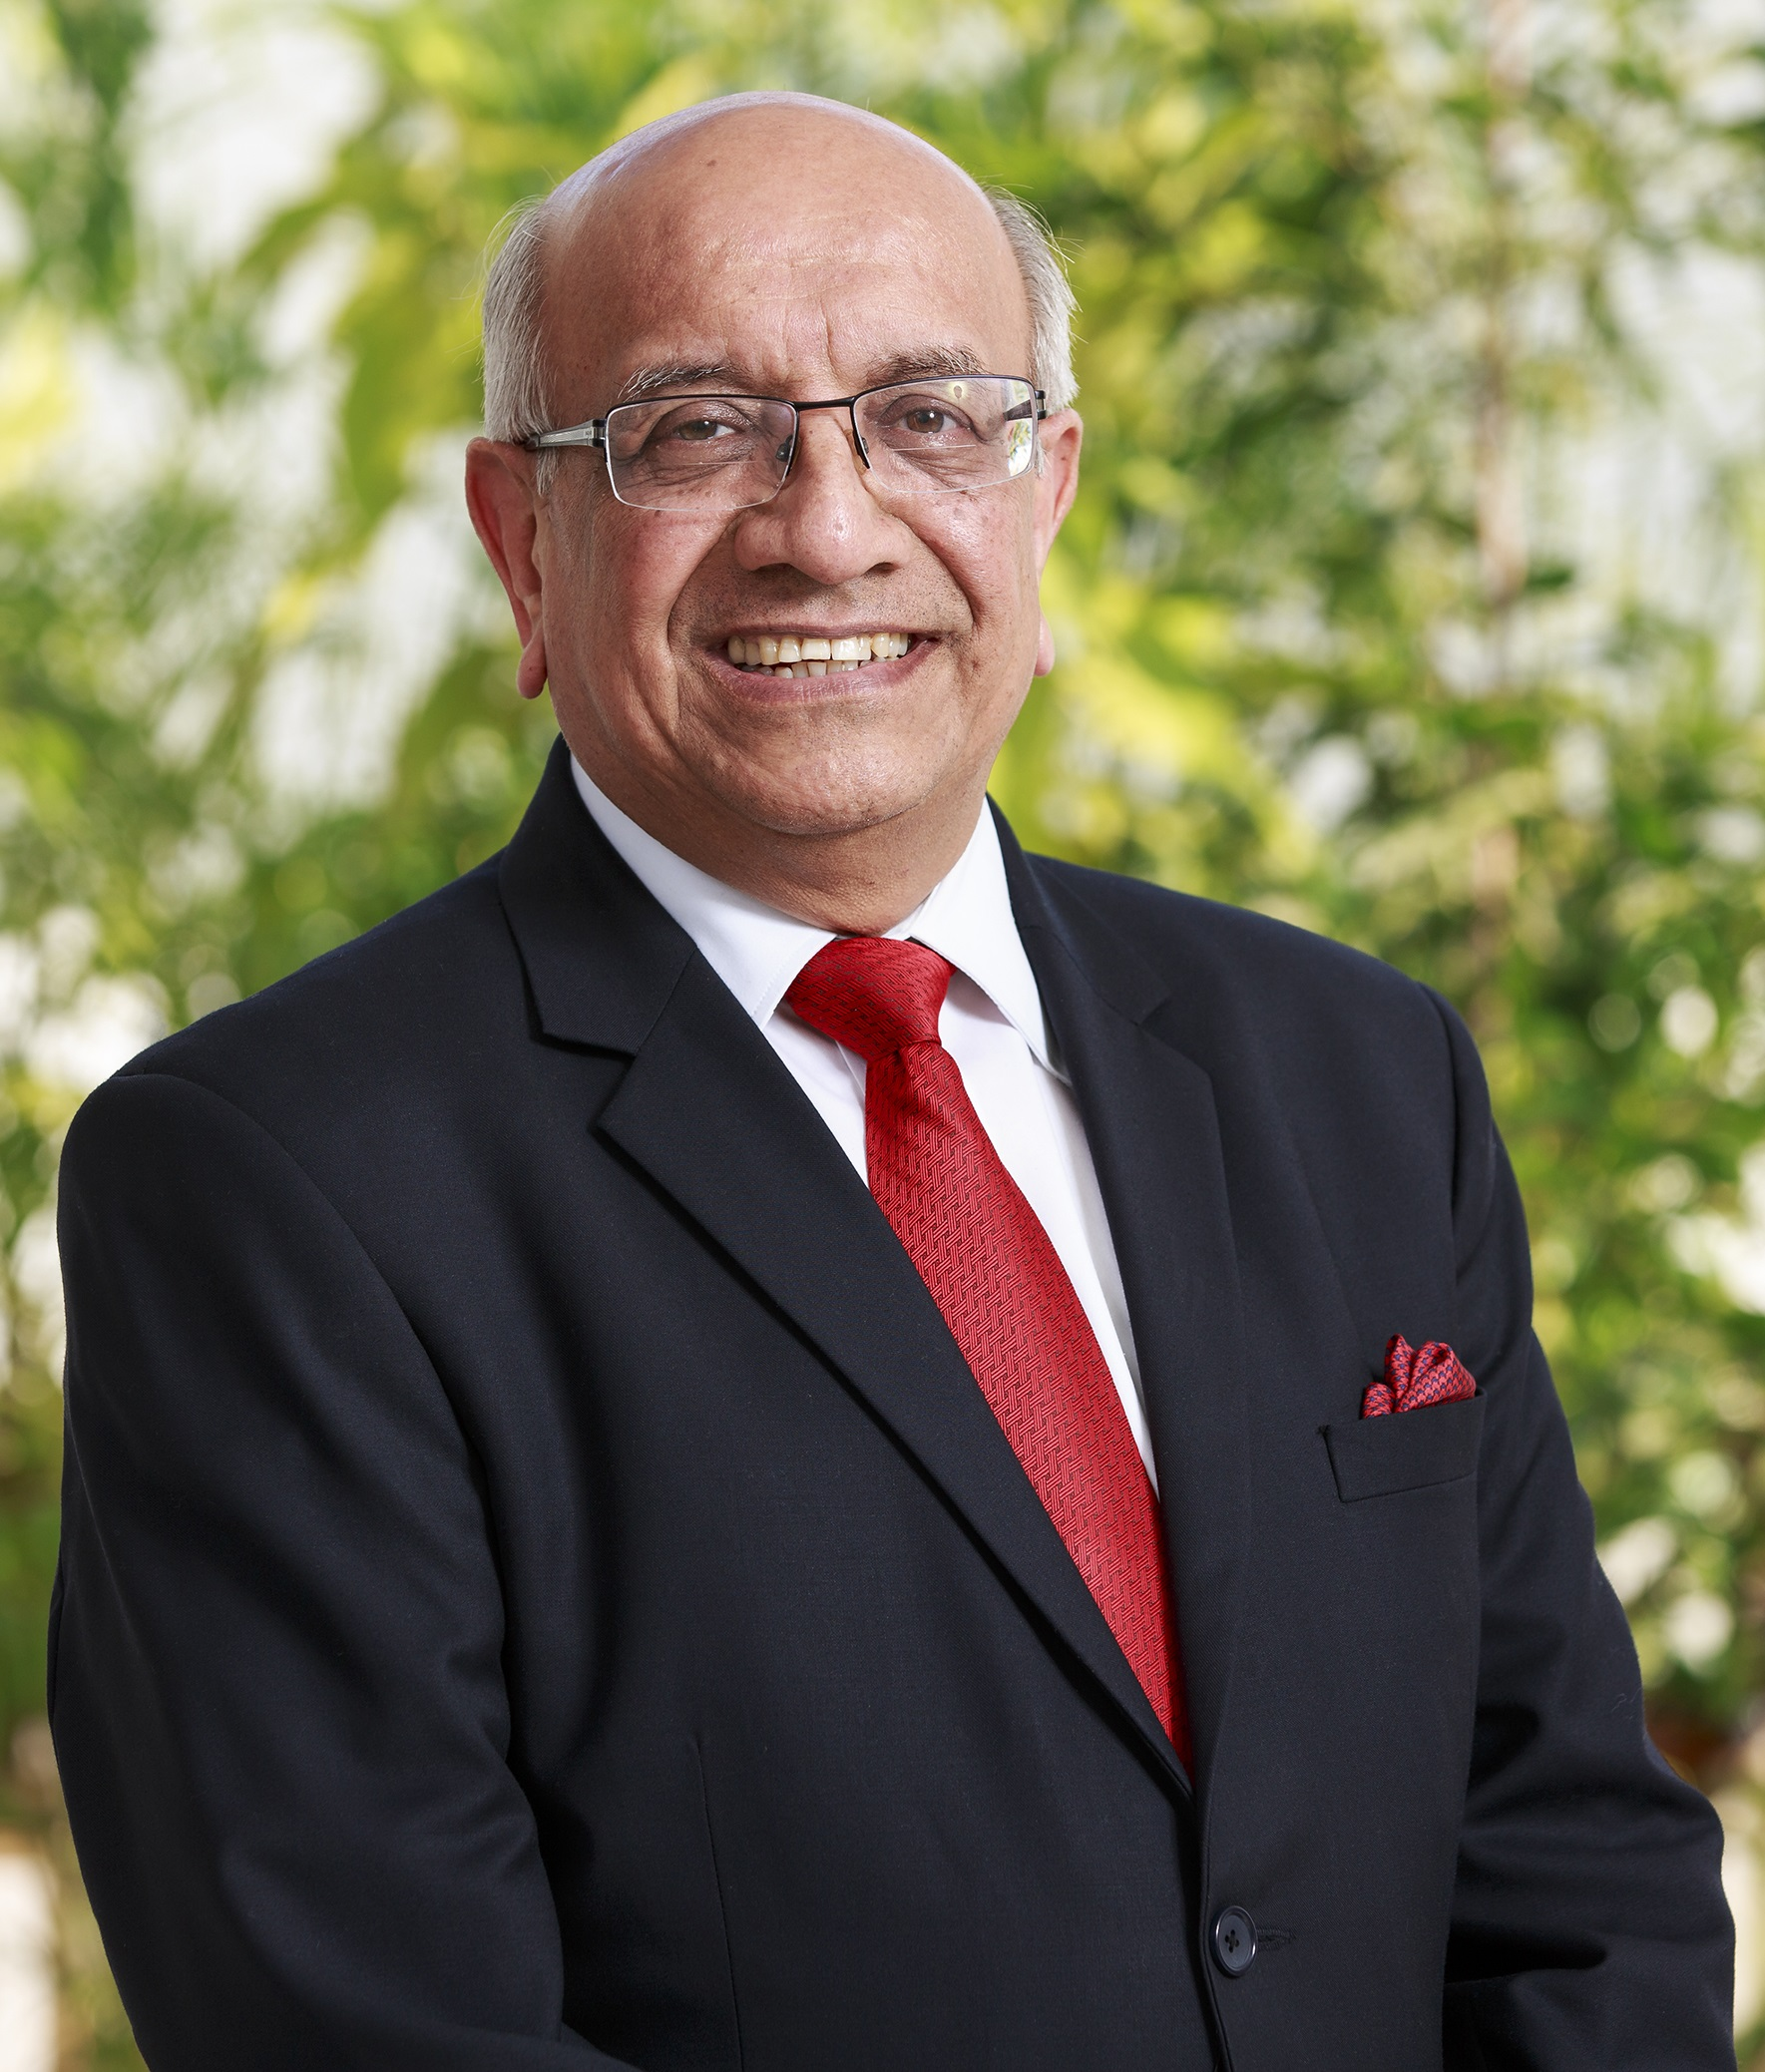 Picture of Som Mittal